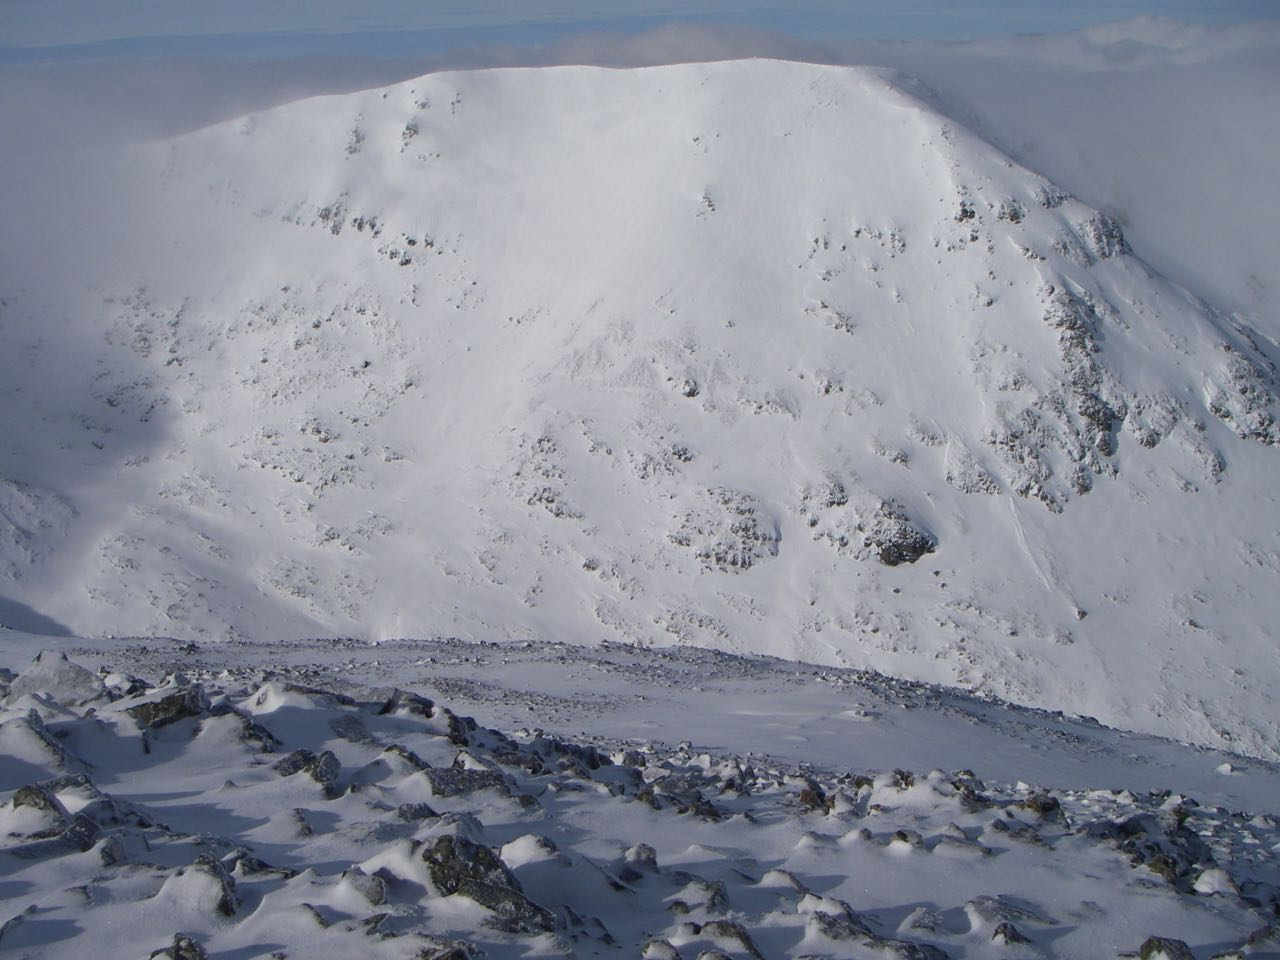 Looking West from Meall a Bhuiridh contrasting its scoured West flank (near ground) with the loaded East face of Creise